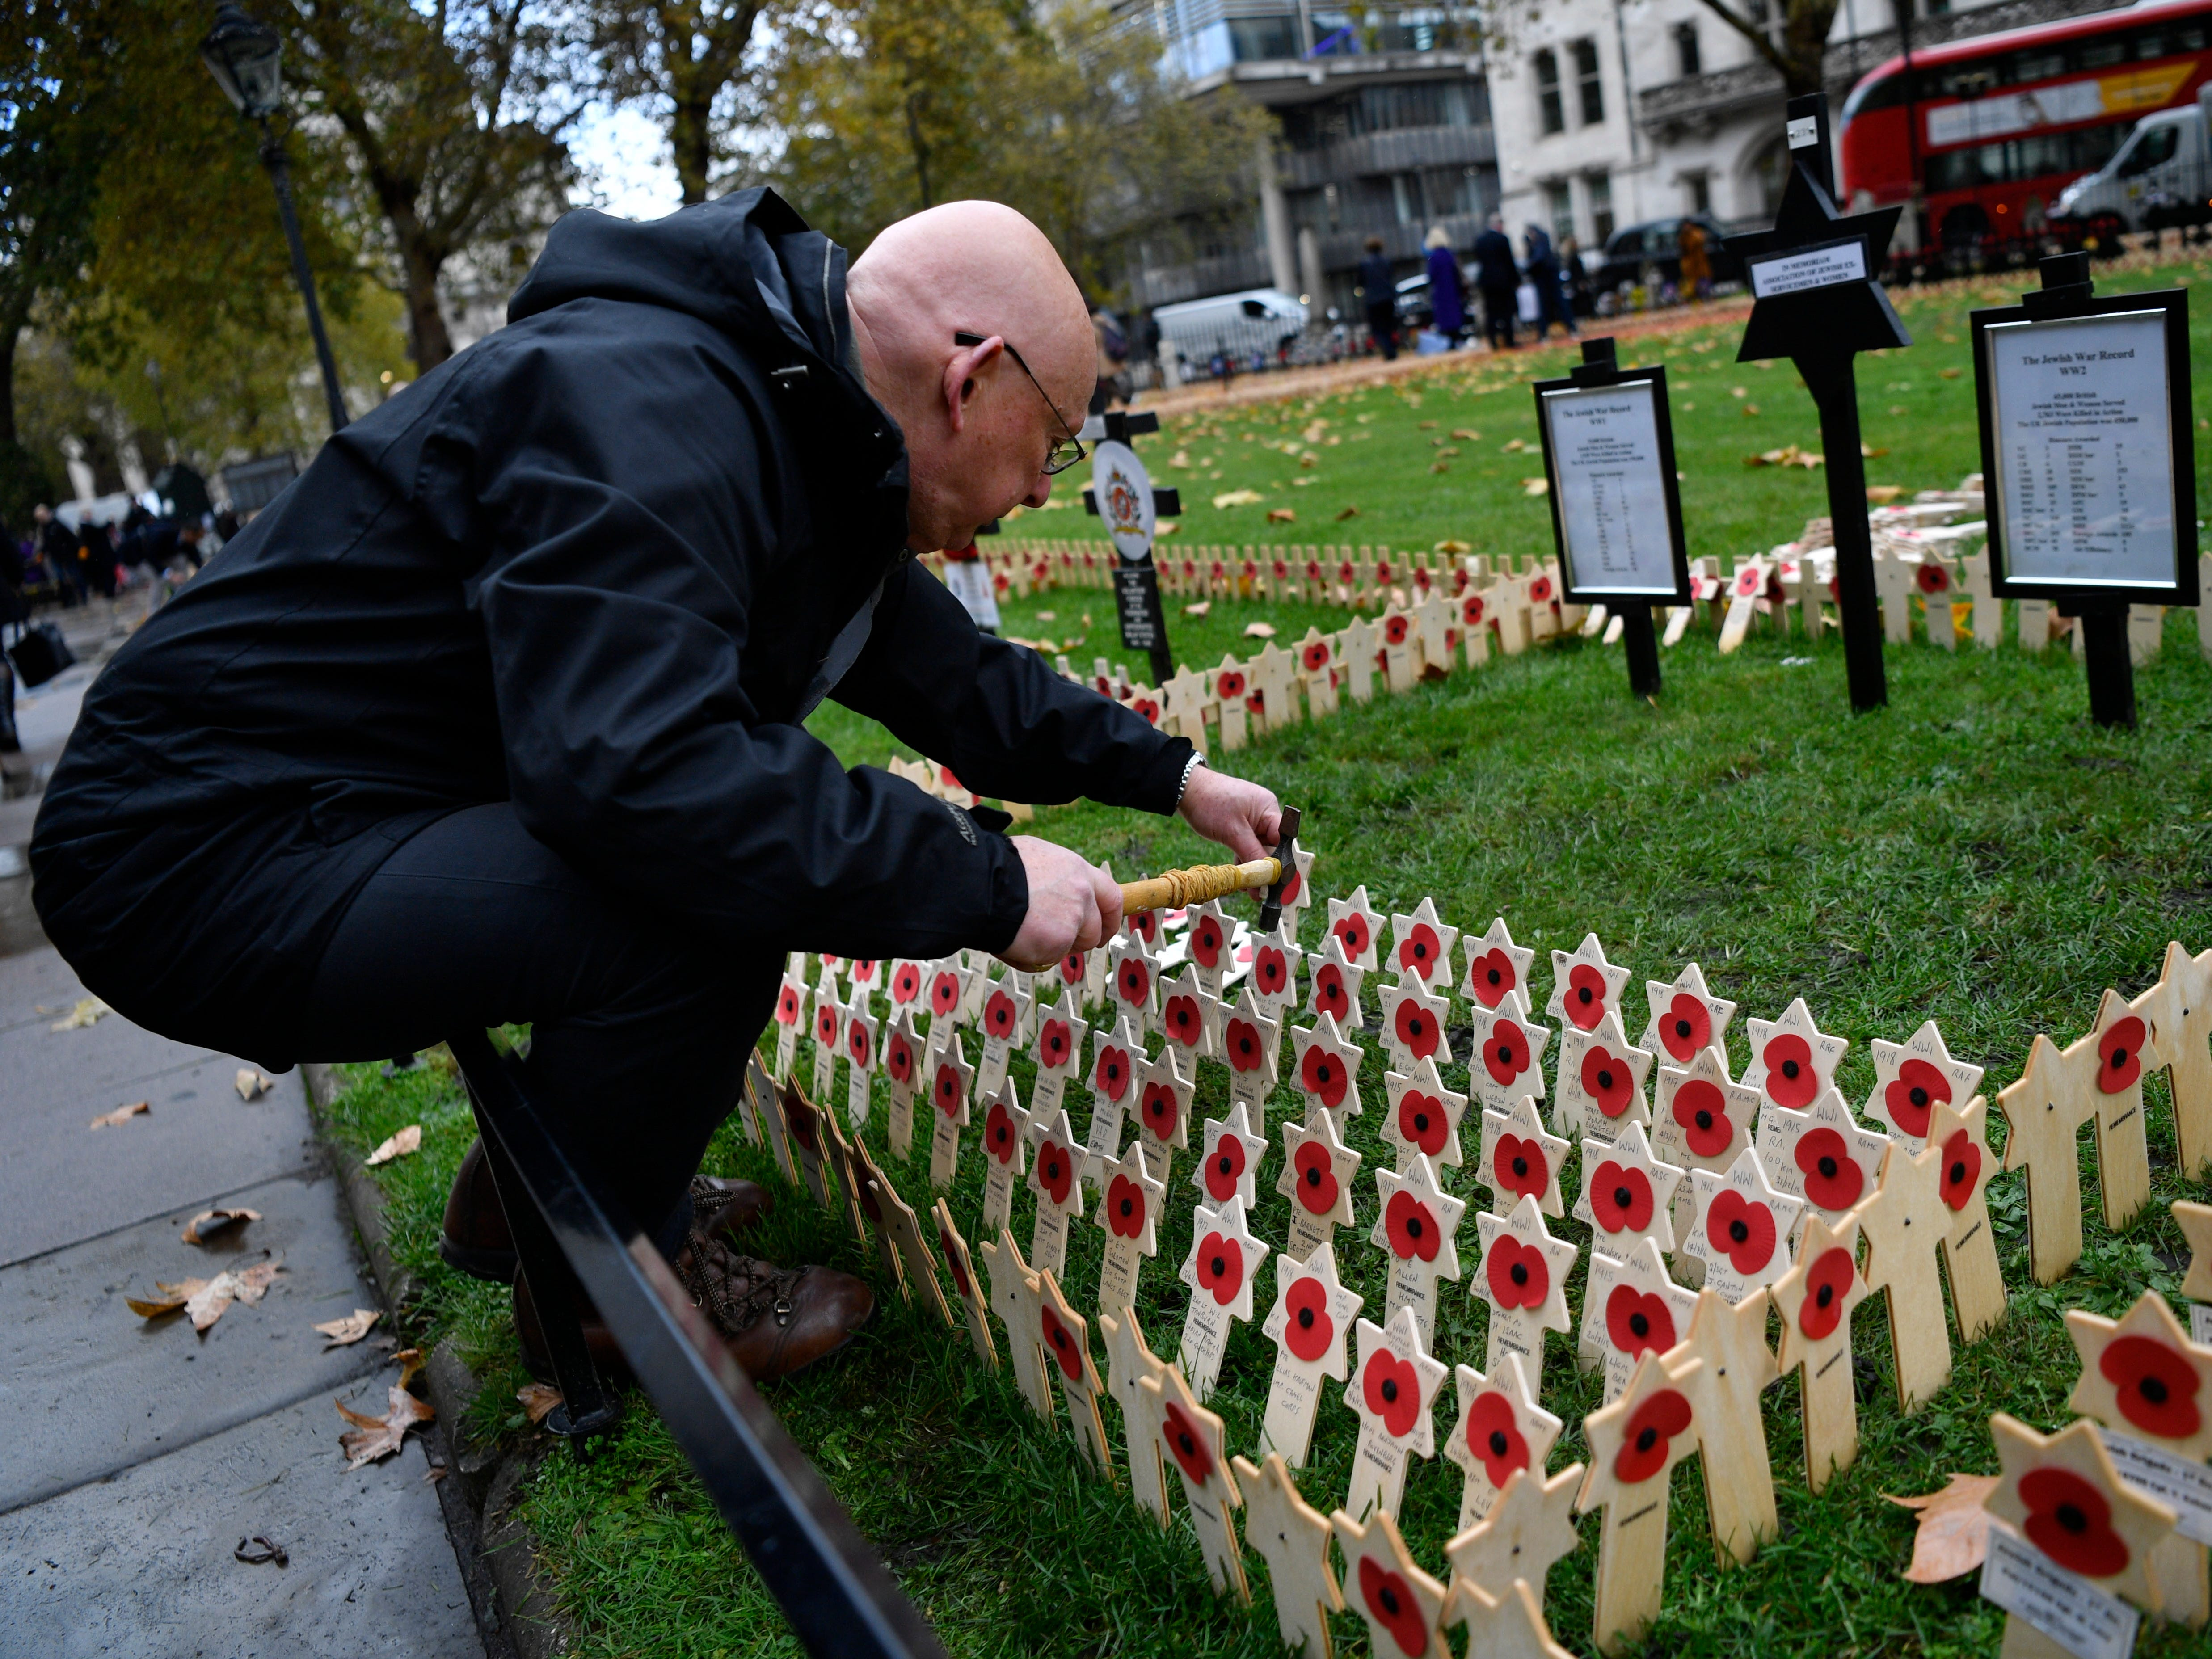 epa07148219 A man places a tribute at Westminster Abbey's Field of Remembrance in central London, Britain, 07 November 2018. The tributes marks Armistice Day ahead of the 100th anniversary of WWI Armistice Day on 11 November. Reports state that on 08 November  The Duke of Edinburgh will open The Royal British Legion Field of Remembrance at Westminster Abbey. The scarlet poppies on Remembrance Crosses are laid out by the Poppy Factory in over 230 plots for Regimental and other Associations.  EPA-EFE/NEIL HALL ORG XMIT: NGH15